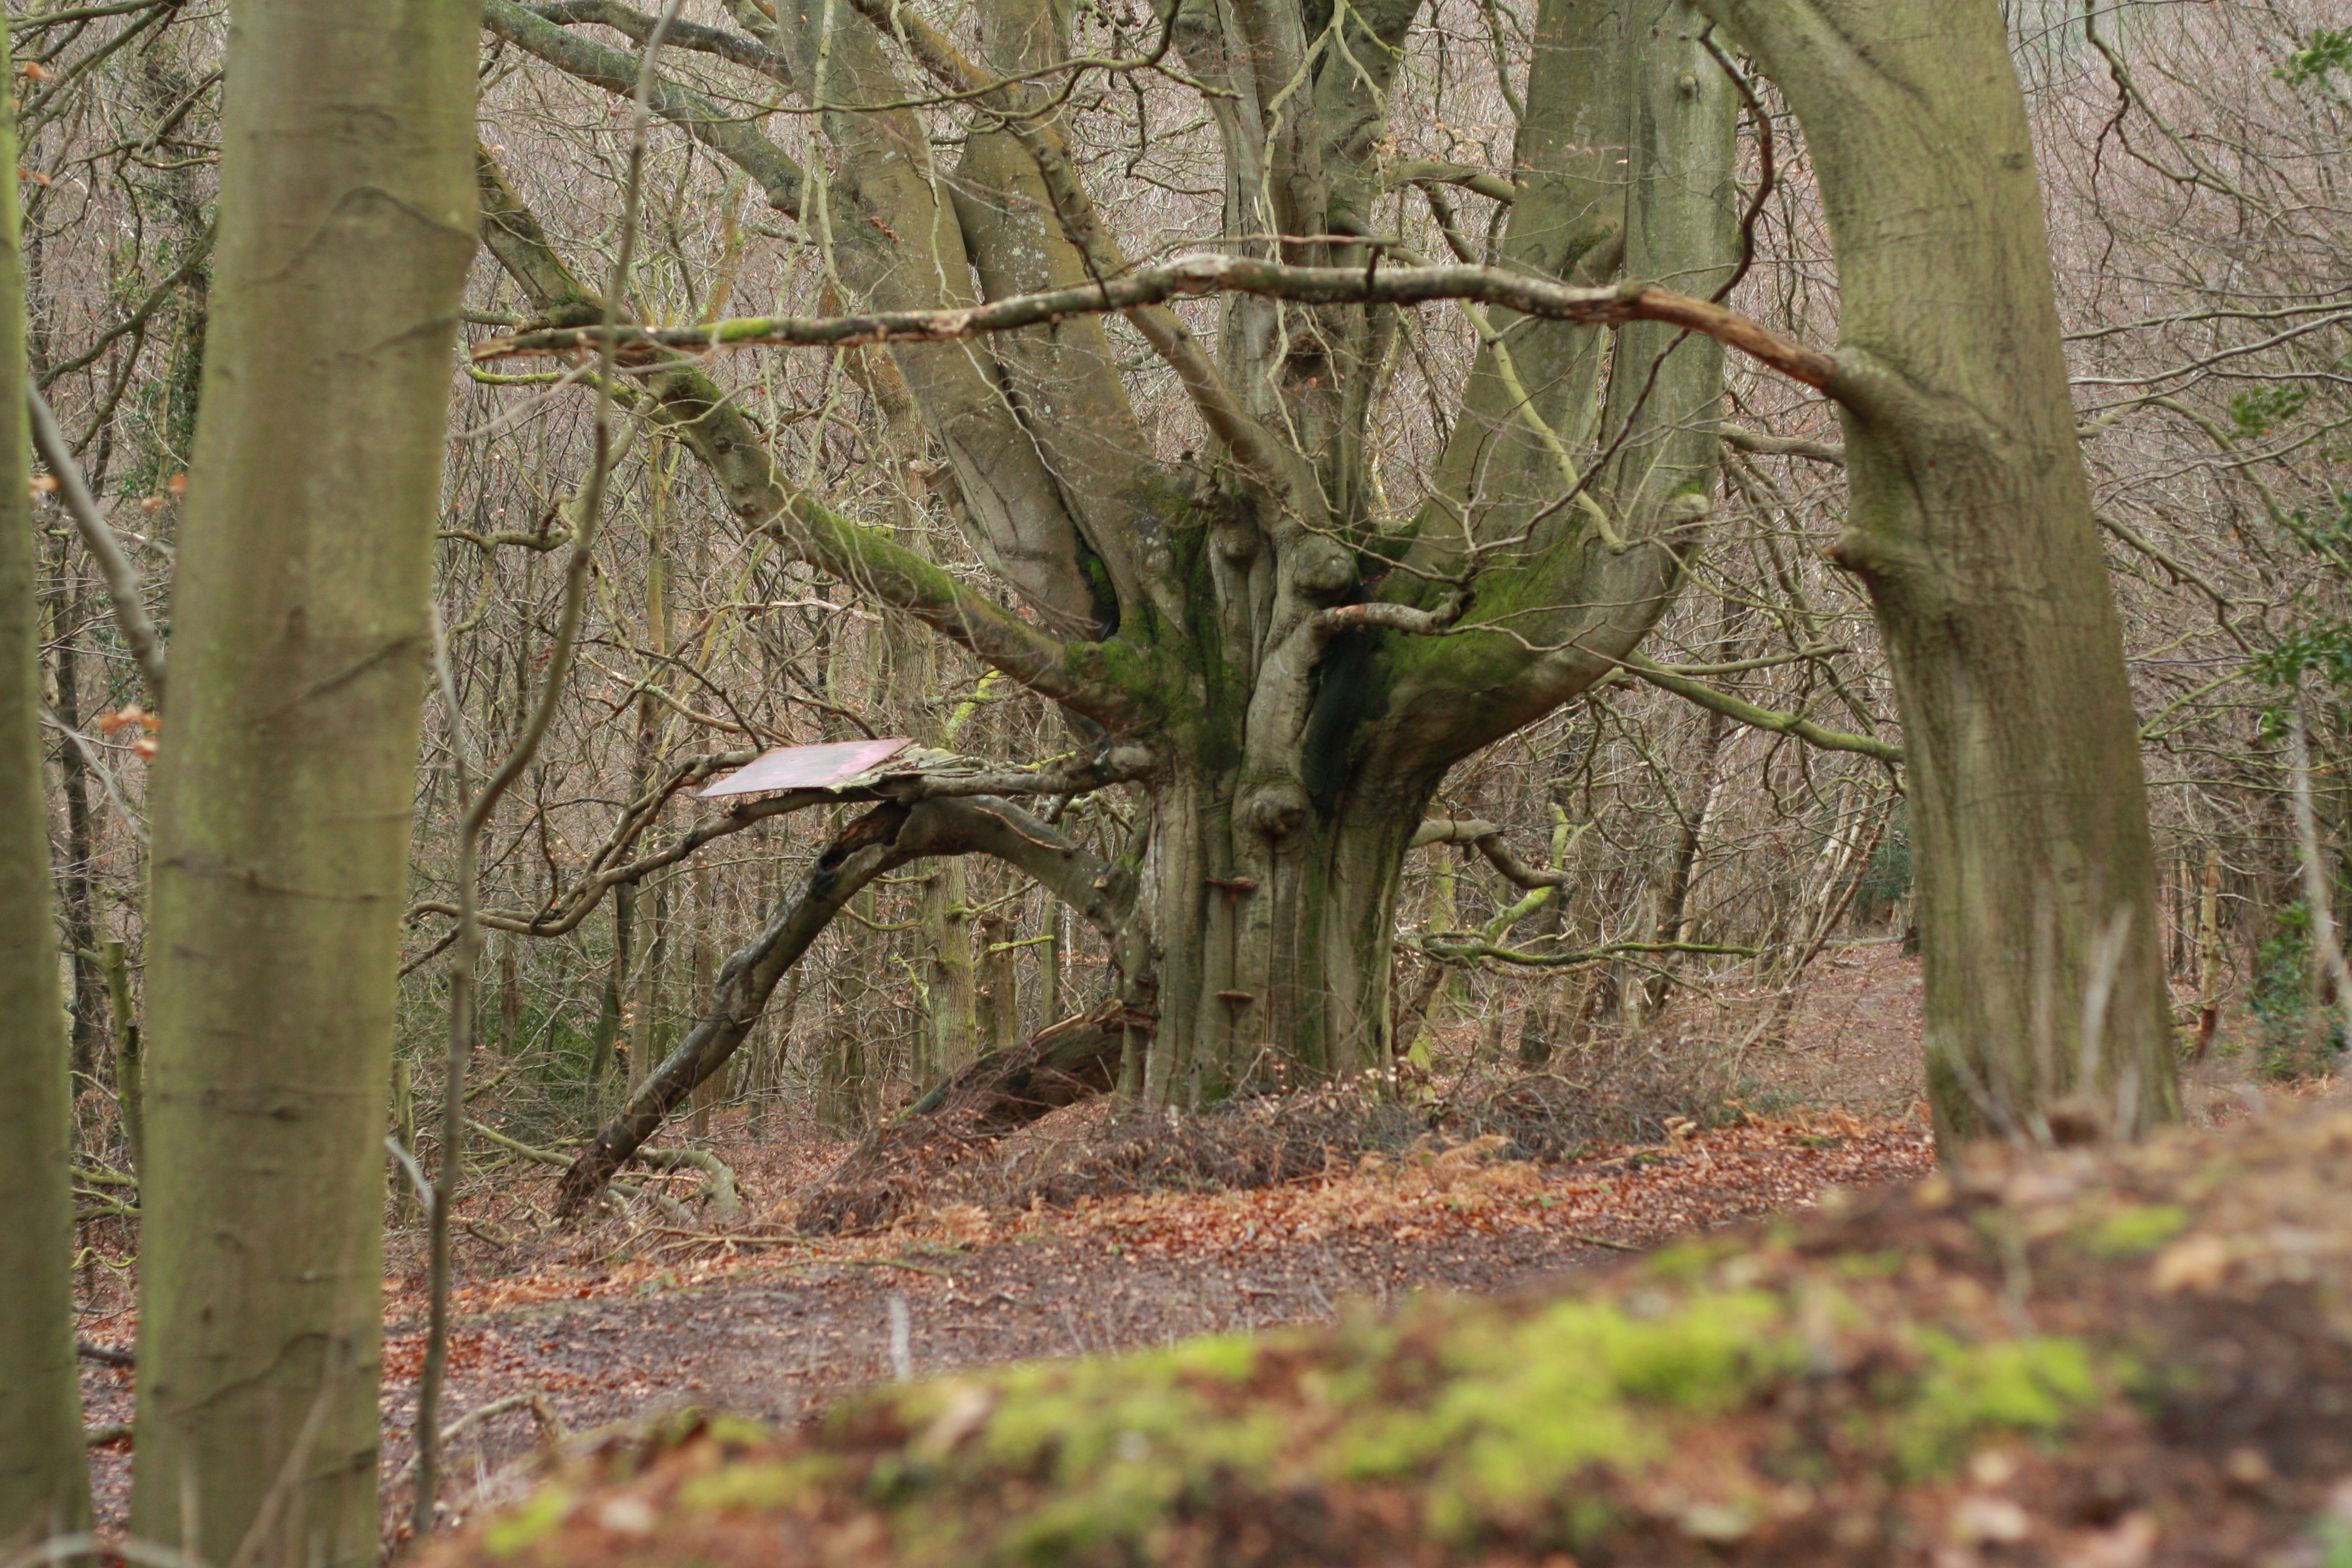 big-beech-tree-at-dallington-by-luke-barley-cropped-for-website